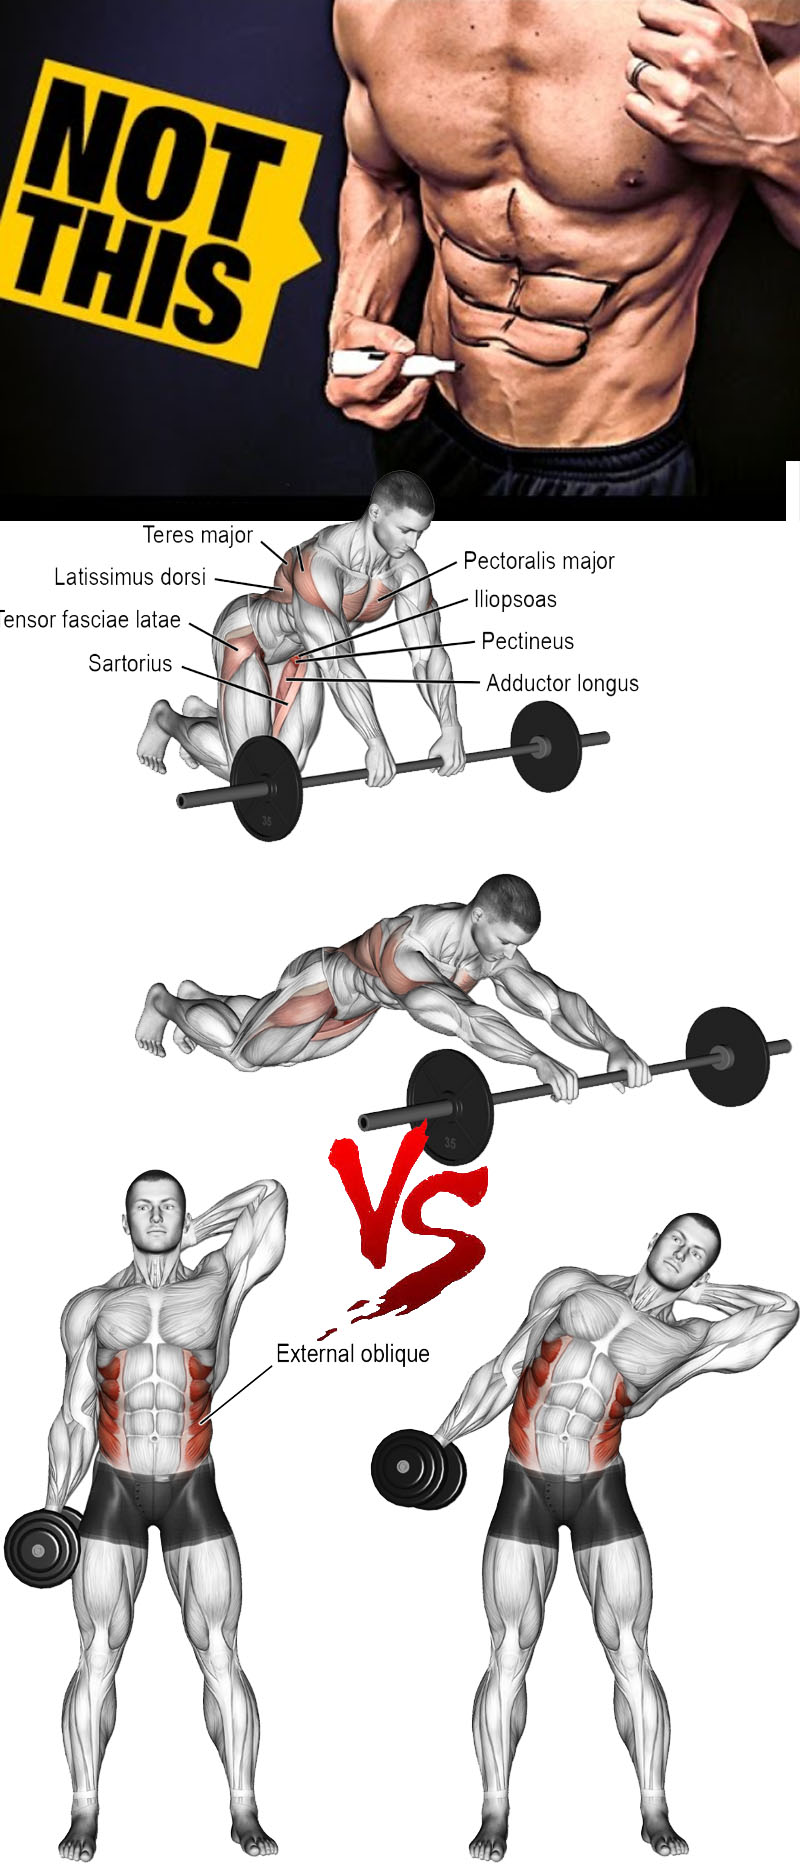 Barbell rollout VS Dumbbell side bend